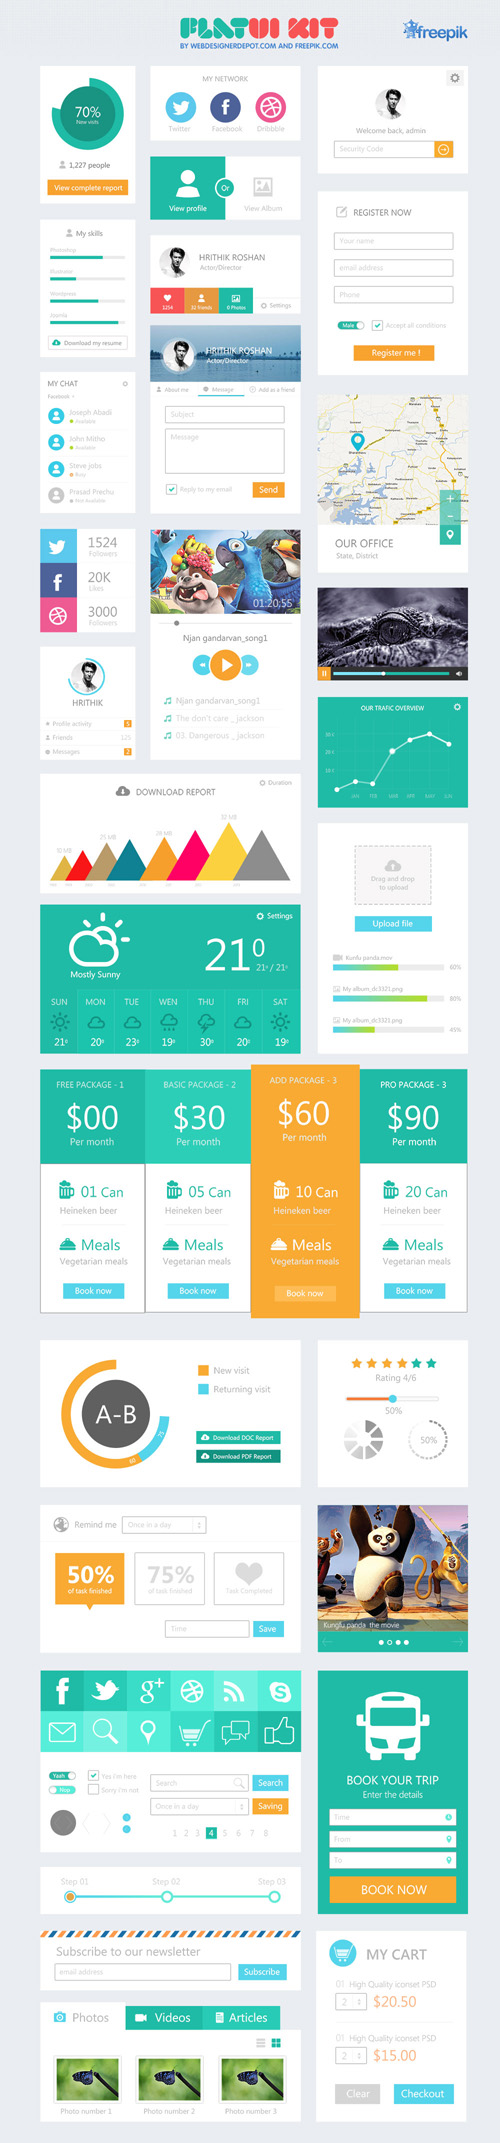 Flat UI Design Elements-40